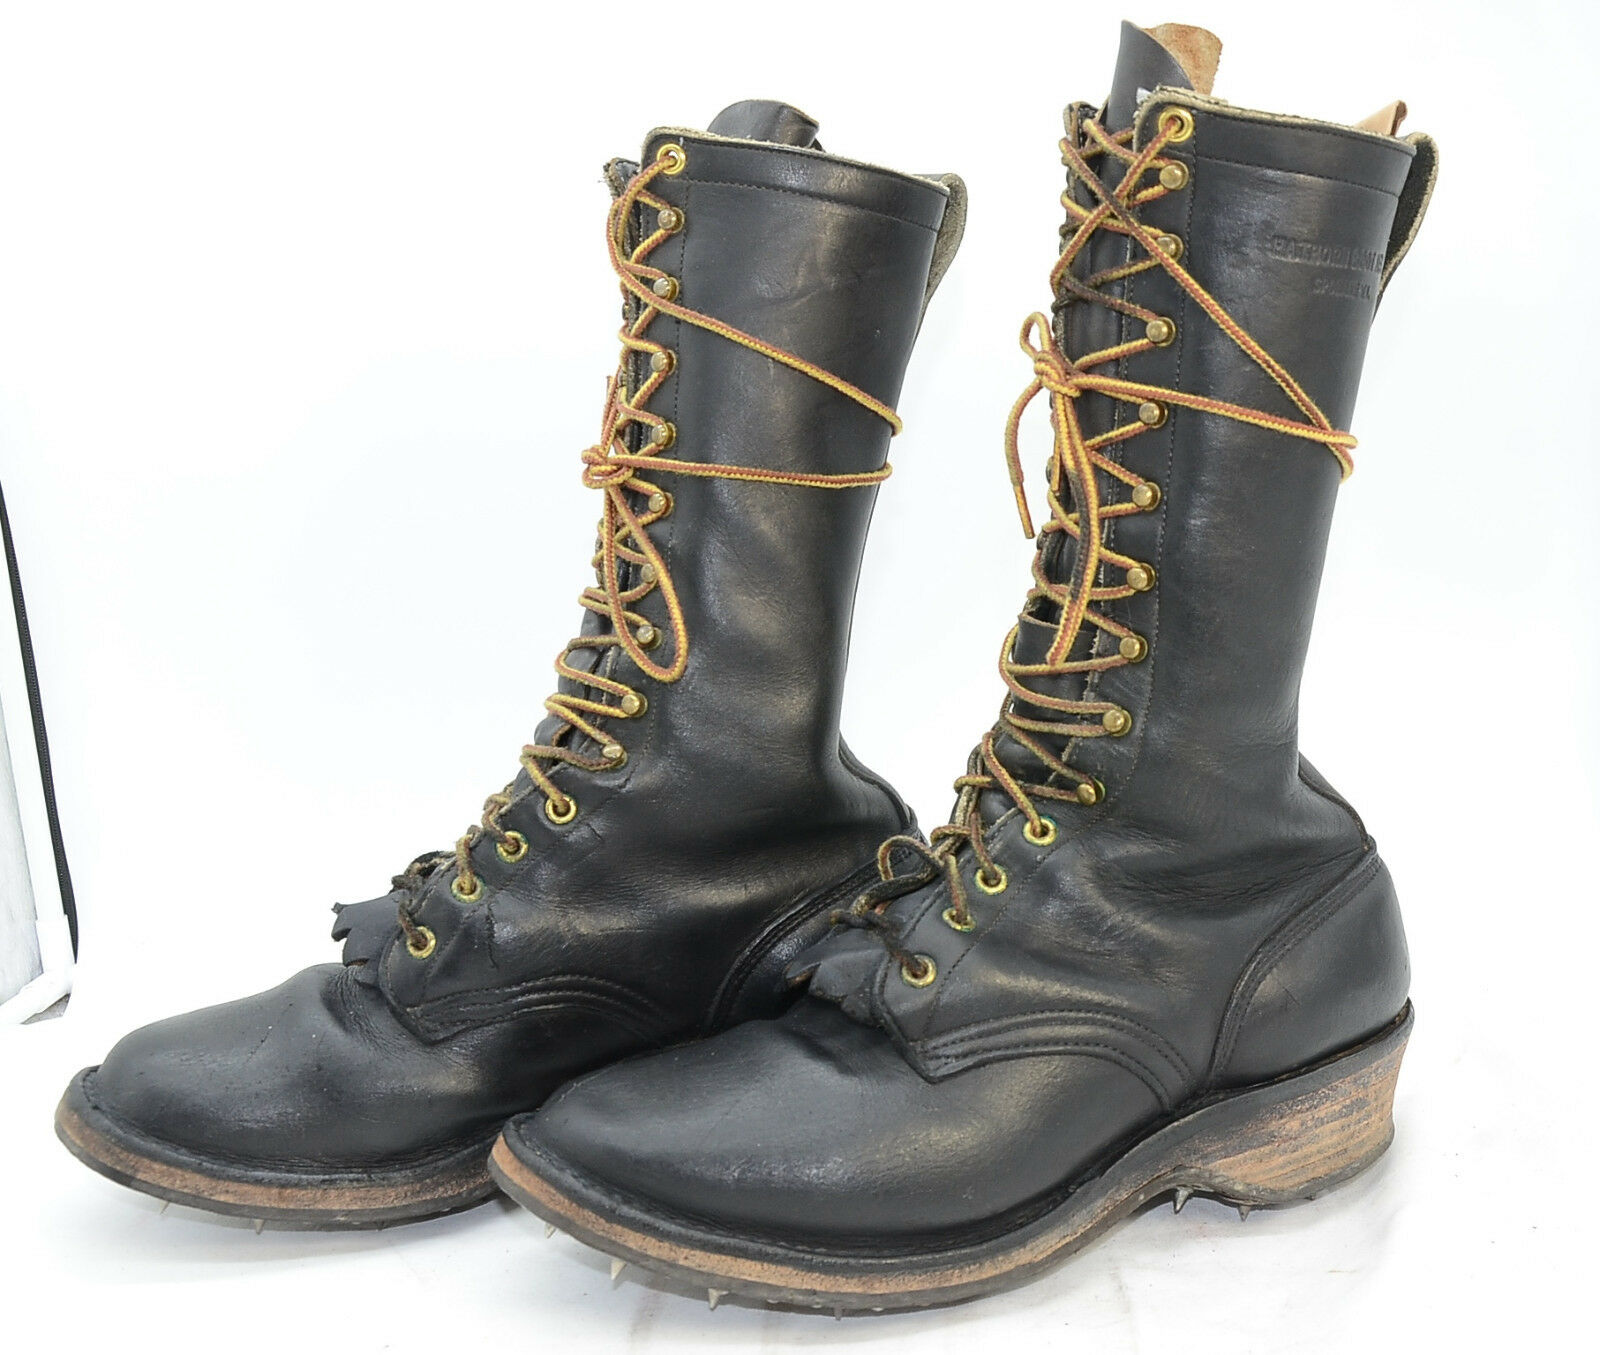 Hathorn Boot MFG Mens Sz 9 C Tree Climber Logger Leather Work BOOTS Spiked Soles